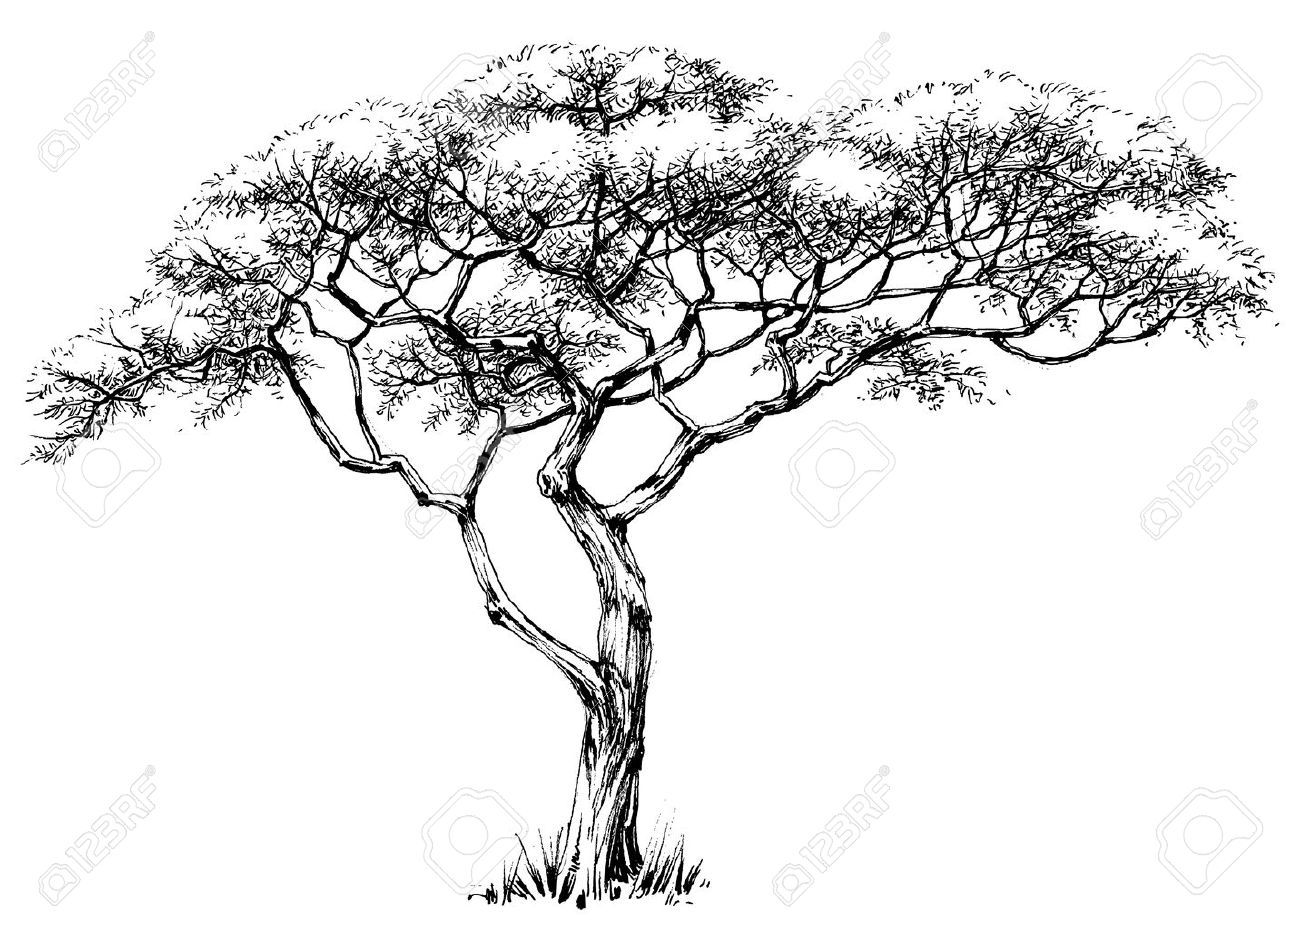 african tree tattoo designs images for tatouage rh besttattoos download African Tribal Tattoos African Tattoos for Women